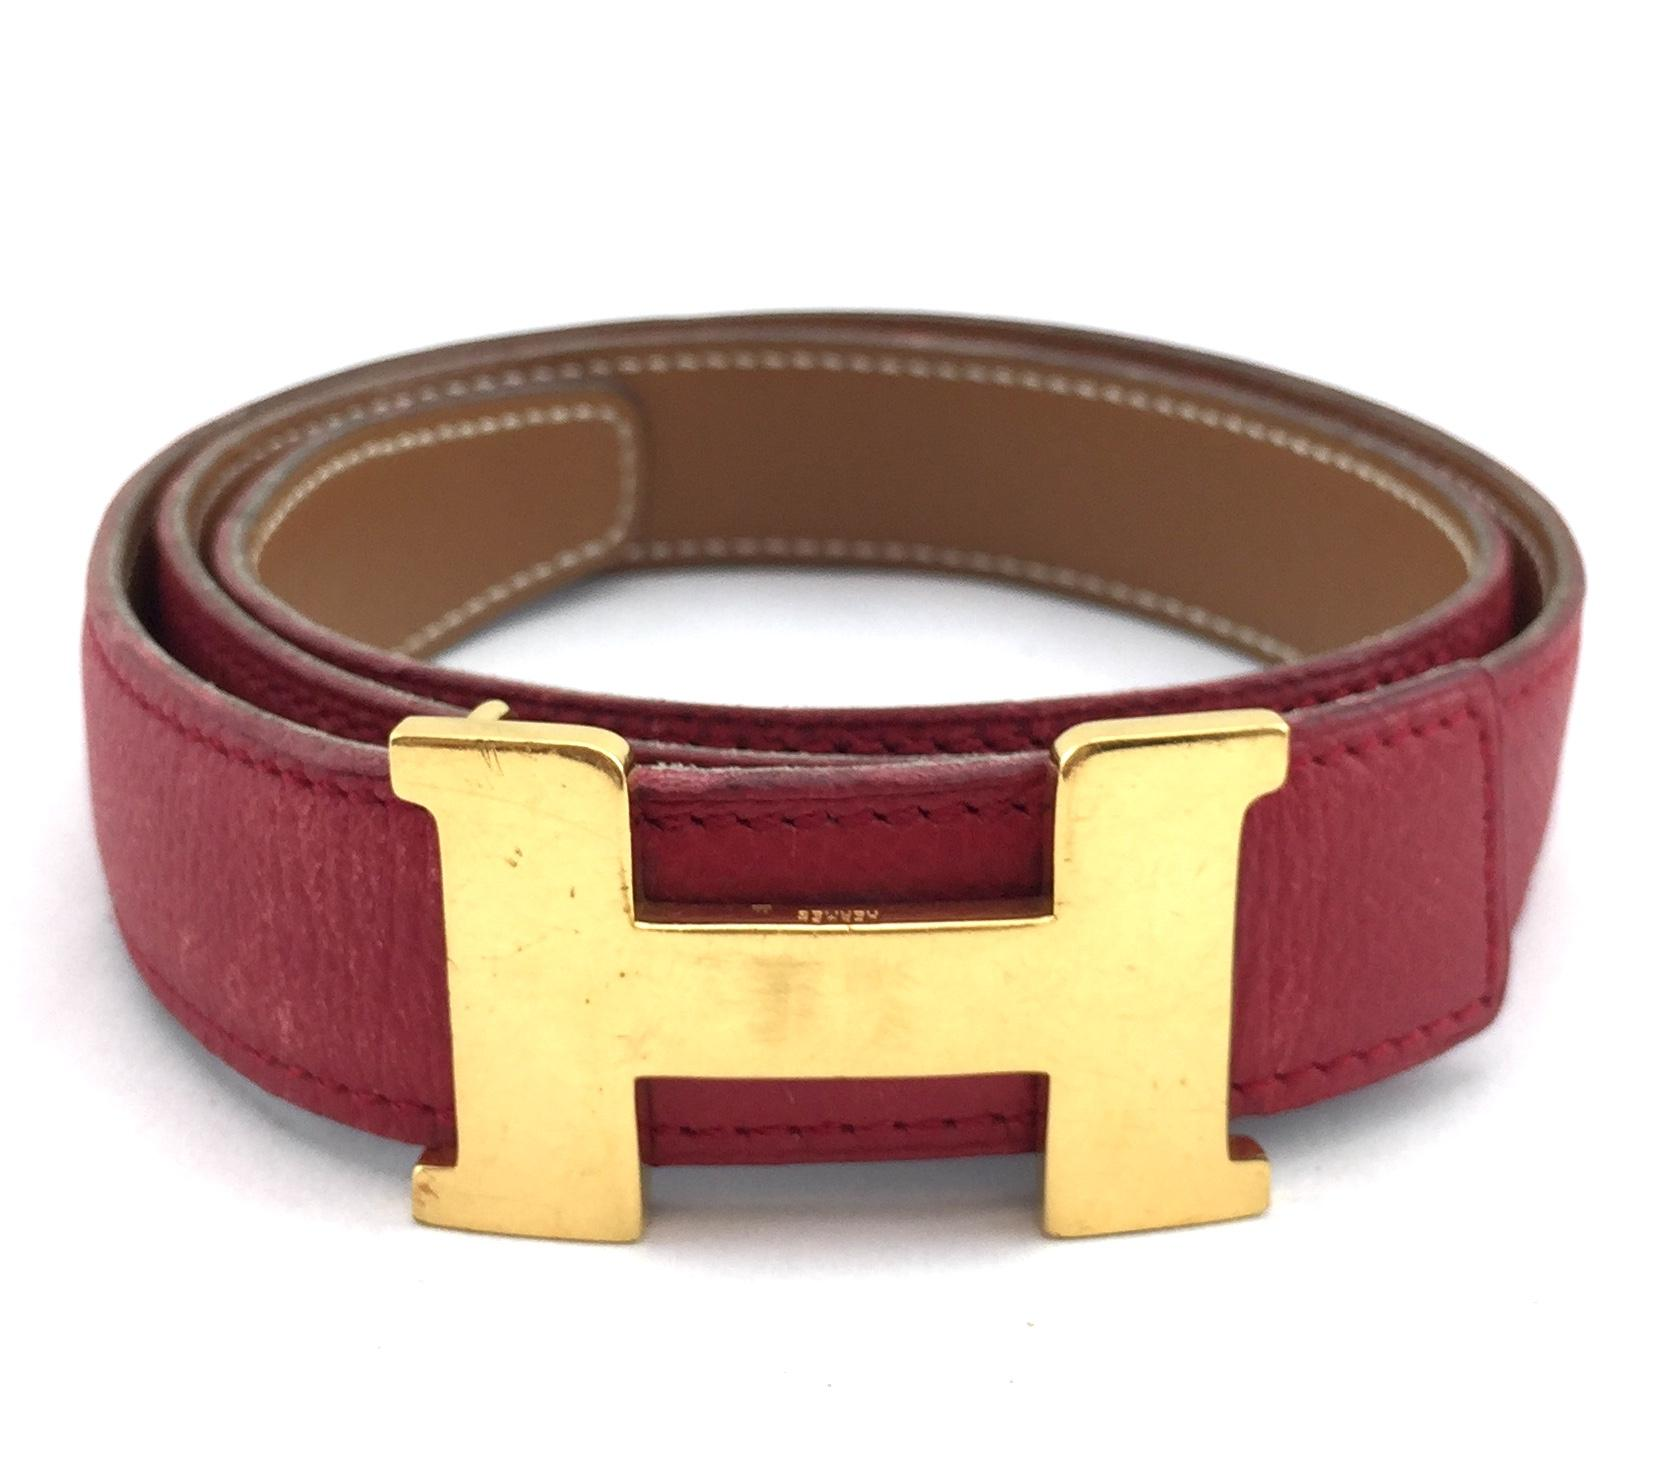 designer h belt u1iw  Herms #11565 24 Mm Gold H Belt Size 65 Reversible Belt Red on Gold